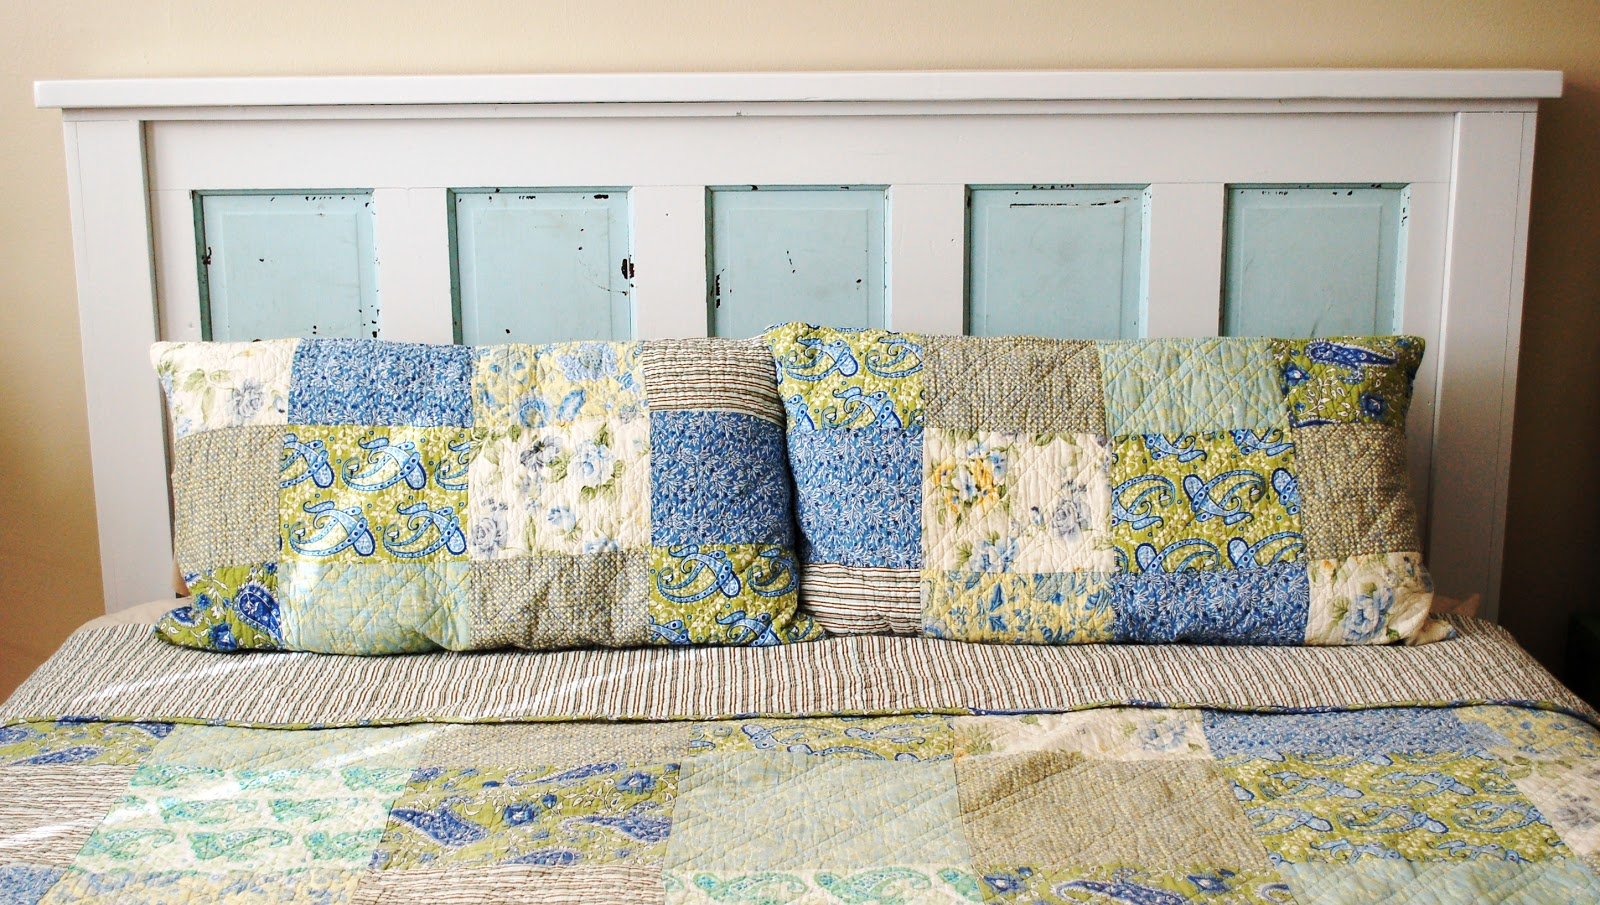 Favorite Ain't She Crafty: How To Build A Headboard From An Old Door VH36